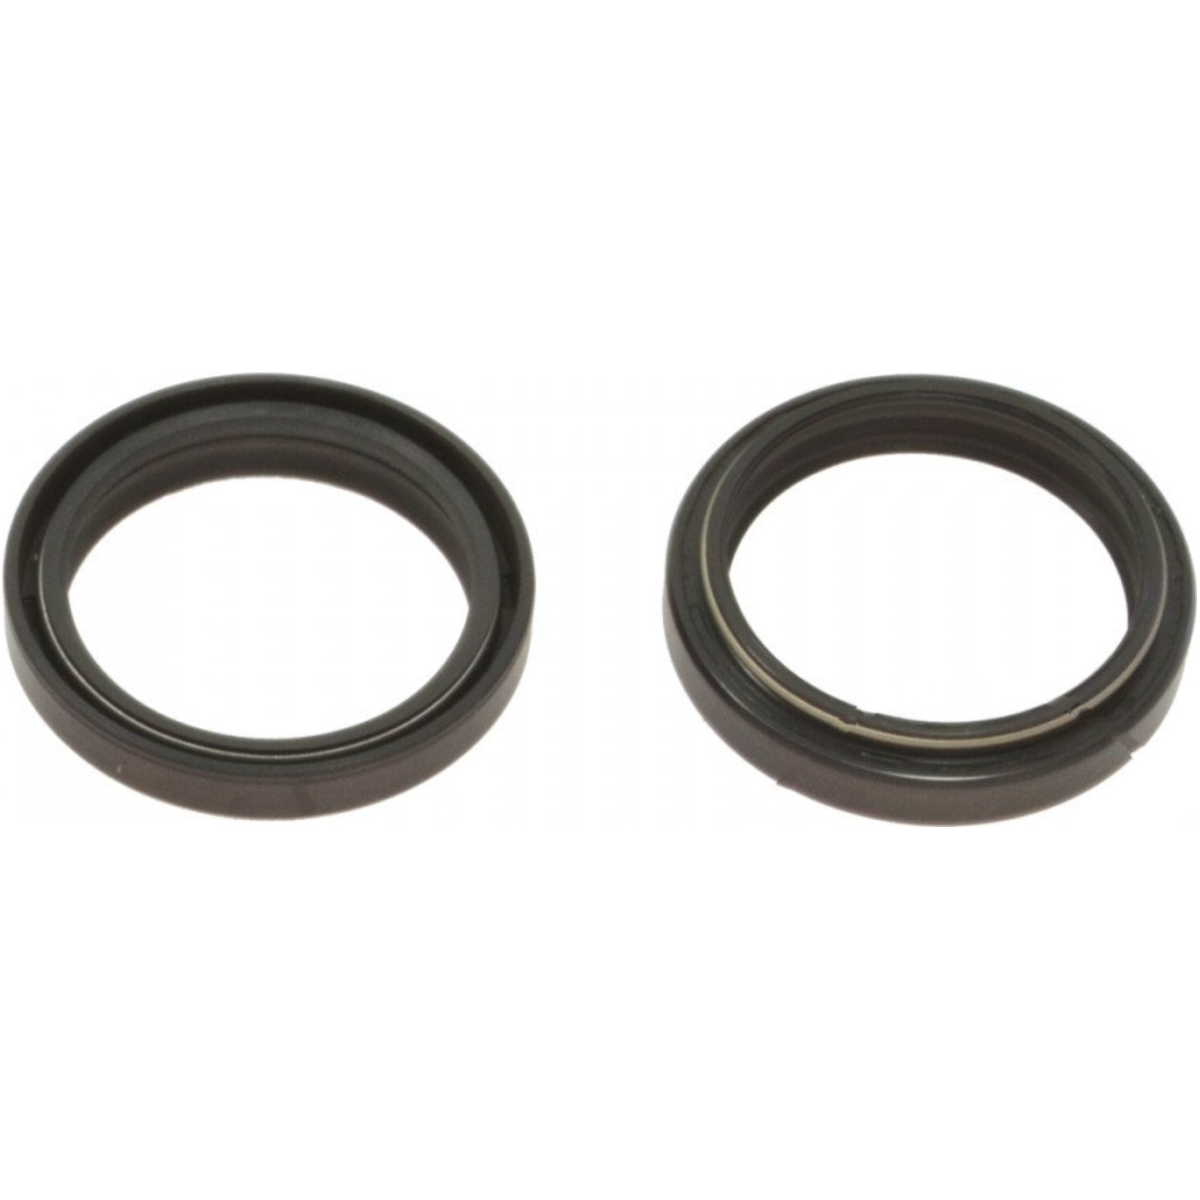 Fork oil seal kit - athena P40FORK455065 - 7 c6349a53d14